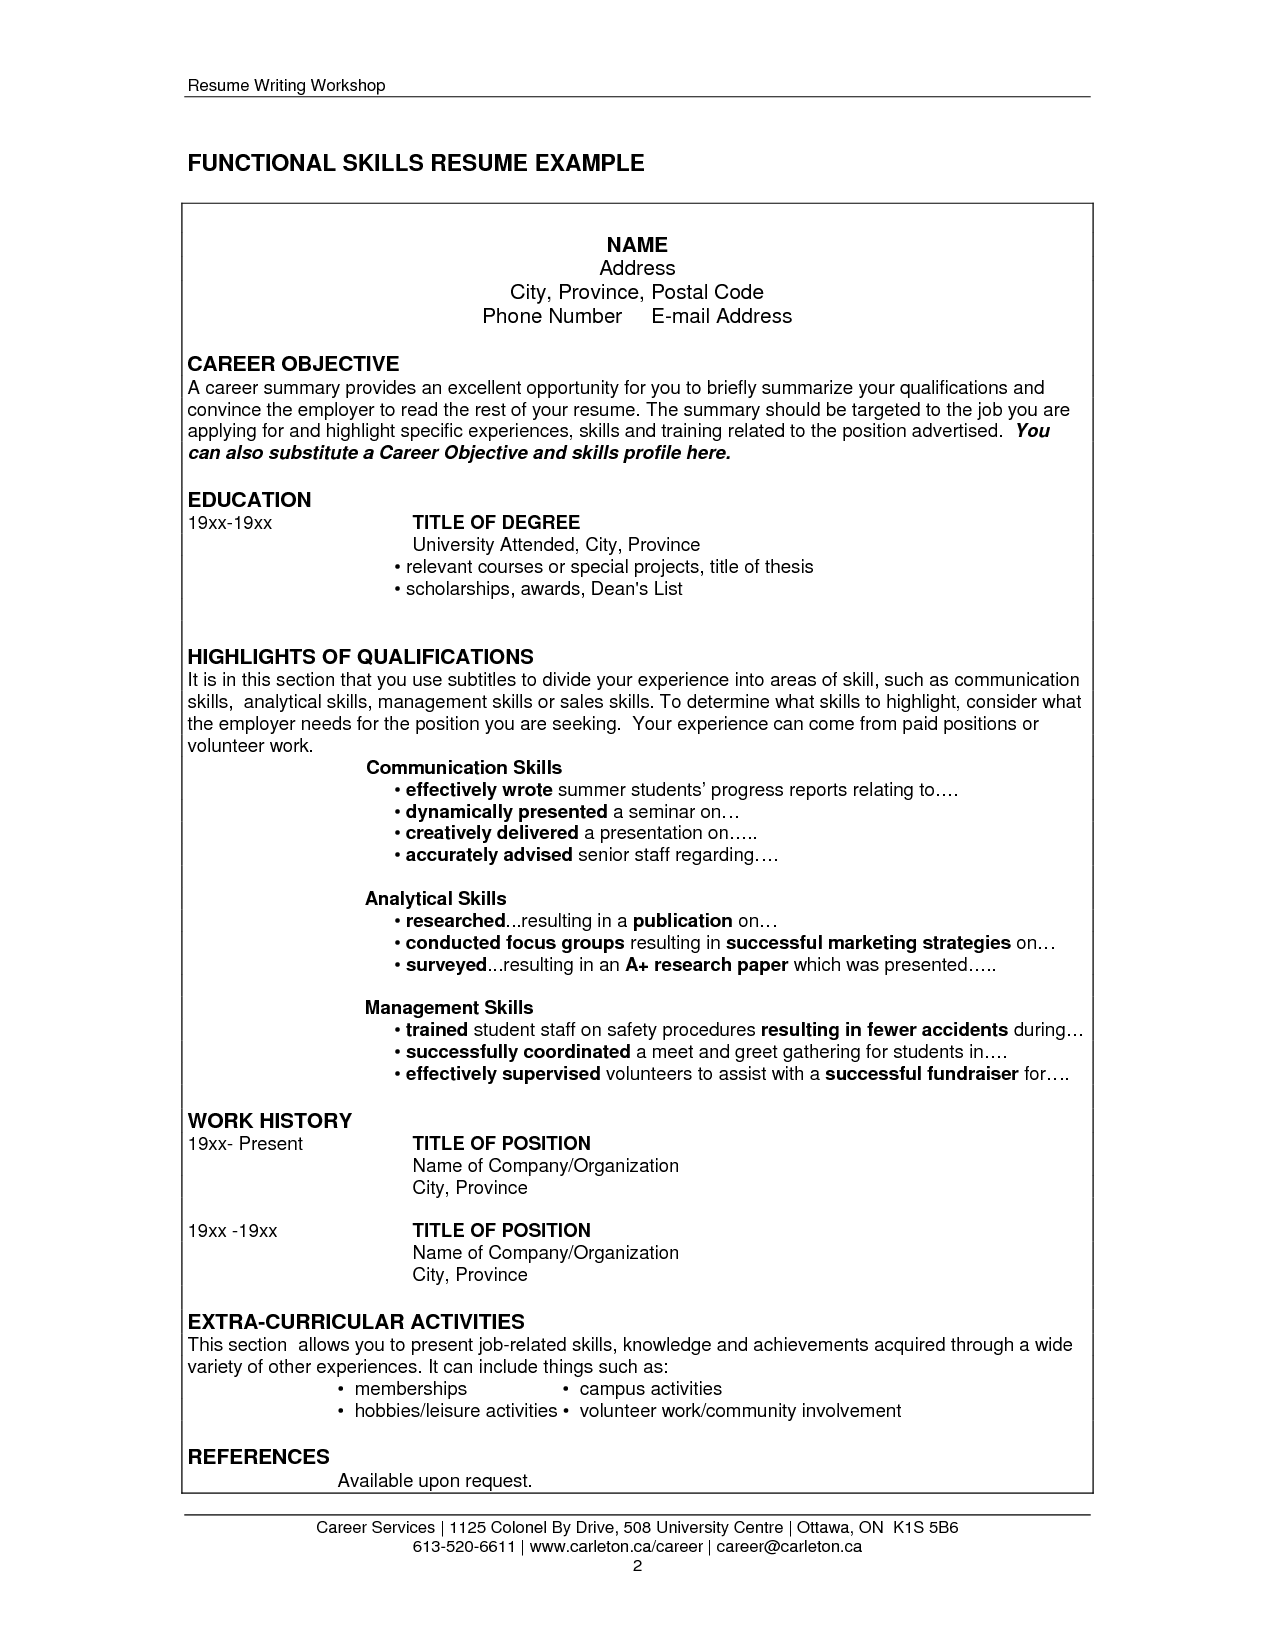 Image result for skills resume format Business Pinterest